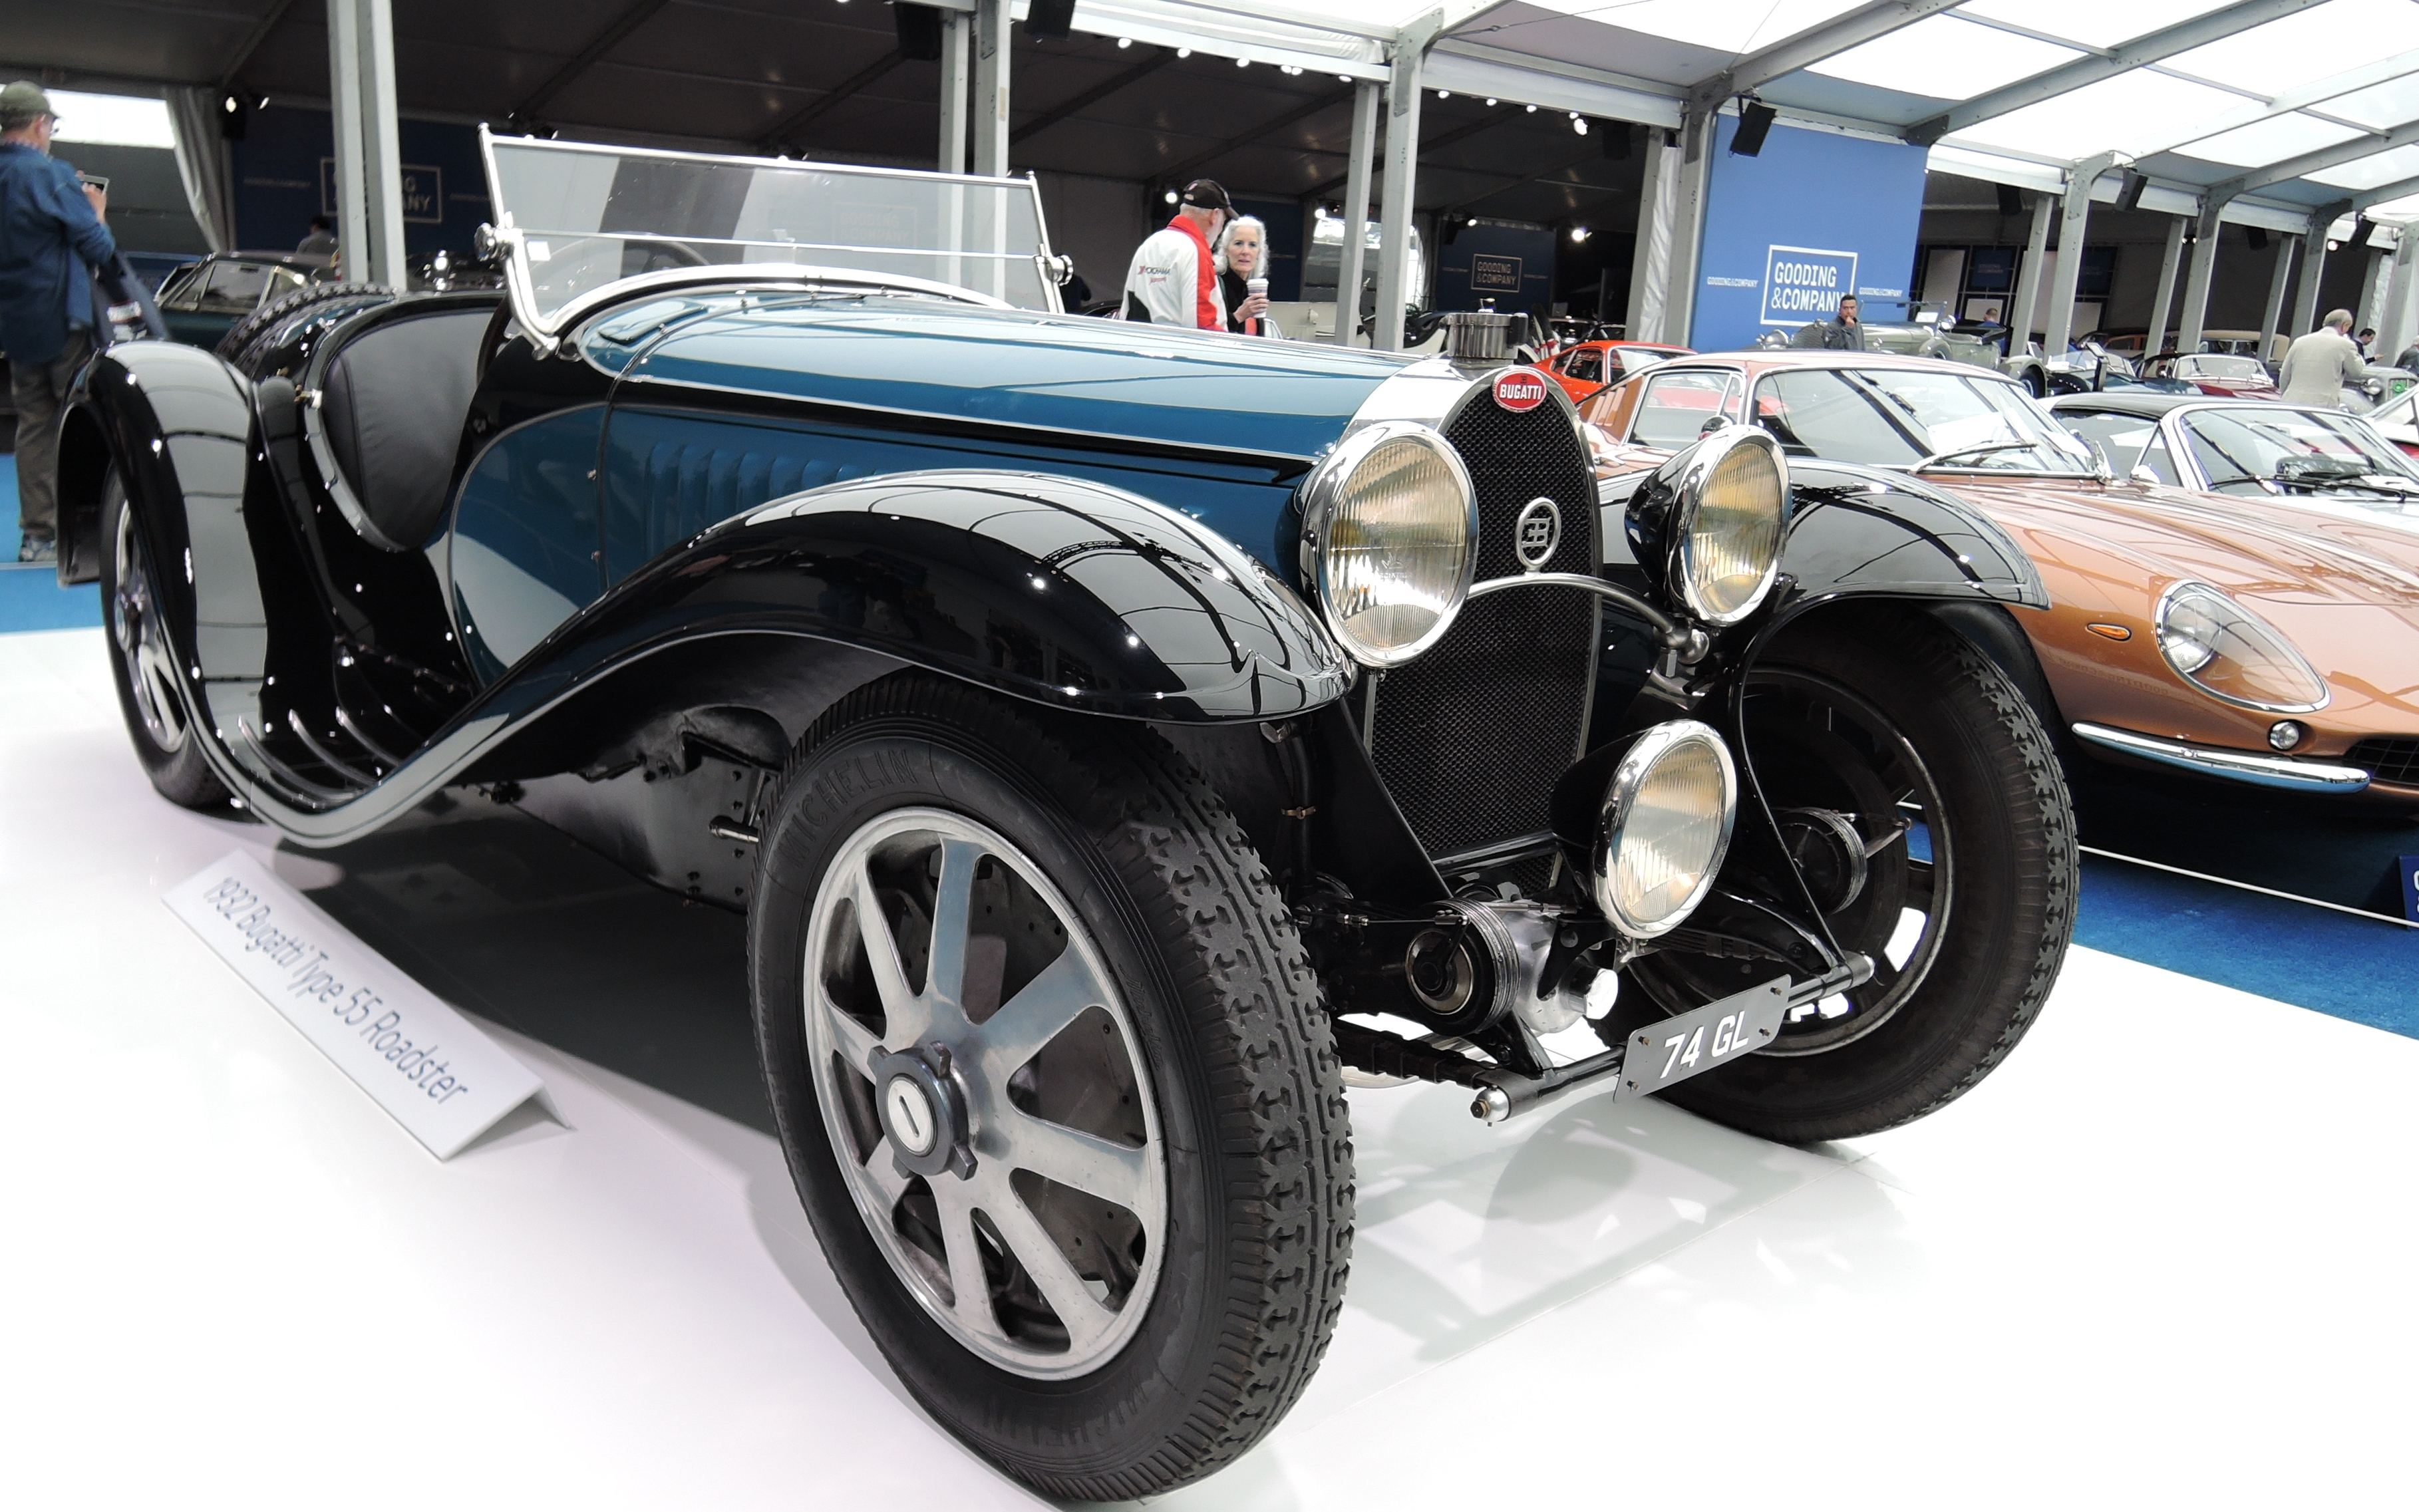 black/blue 1932 Bugatti Type 55 Roadster - Monterey auctions Gooding & Co